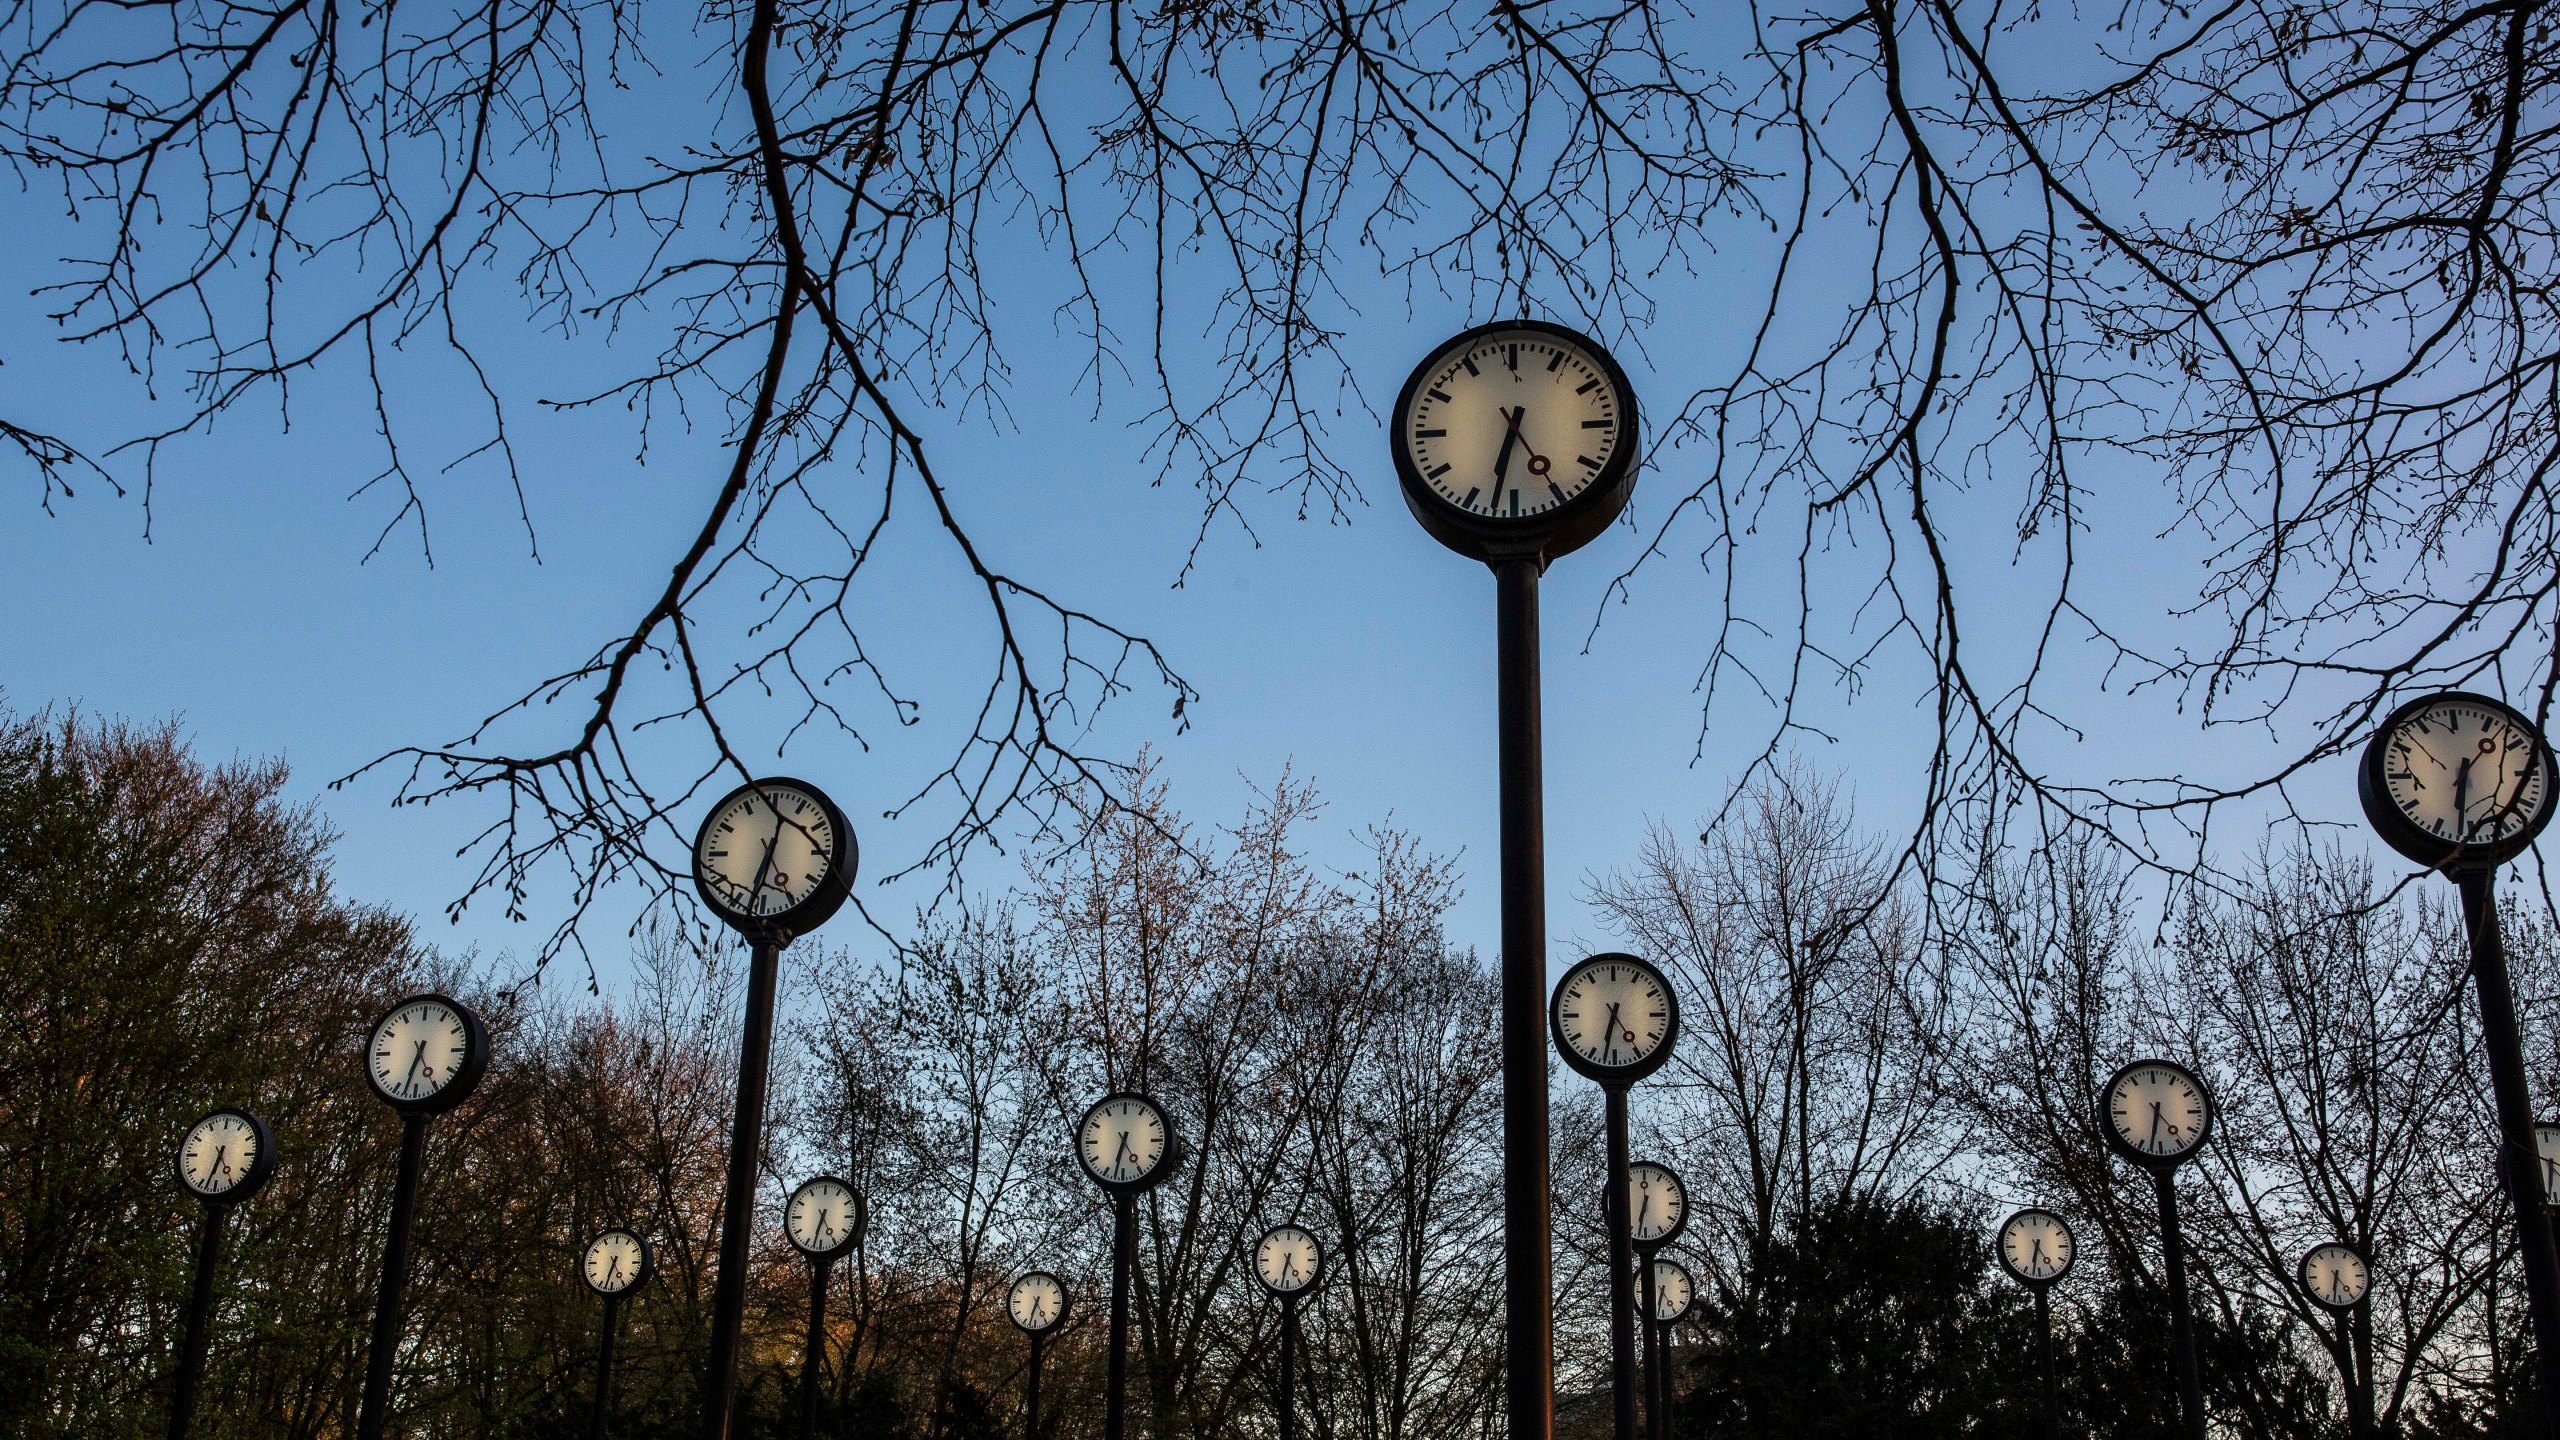 """The """"Zeitfeld"""" (Time Field) clock installation by Klaus Rinke is seen at the entrance of the Suedpark, on March 29, 2019, in Dusseldorf Germany. (Credit: Maja Hitij/Getty Images)"""